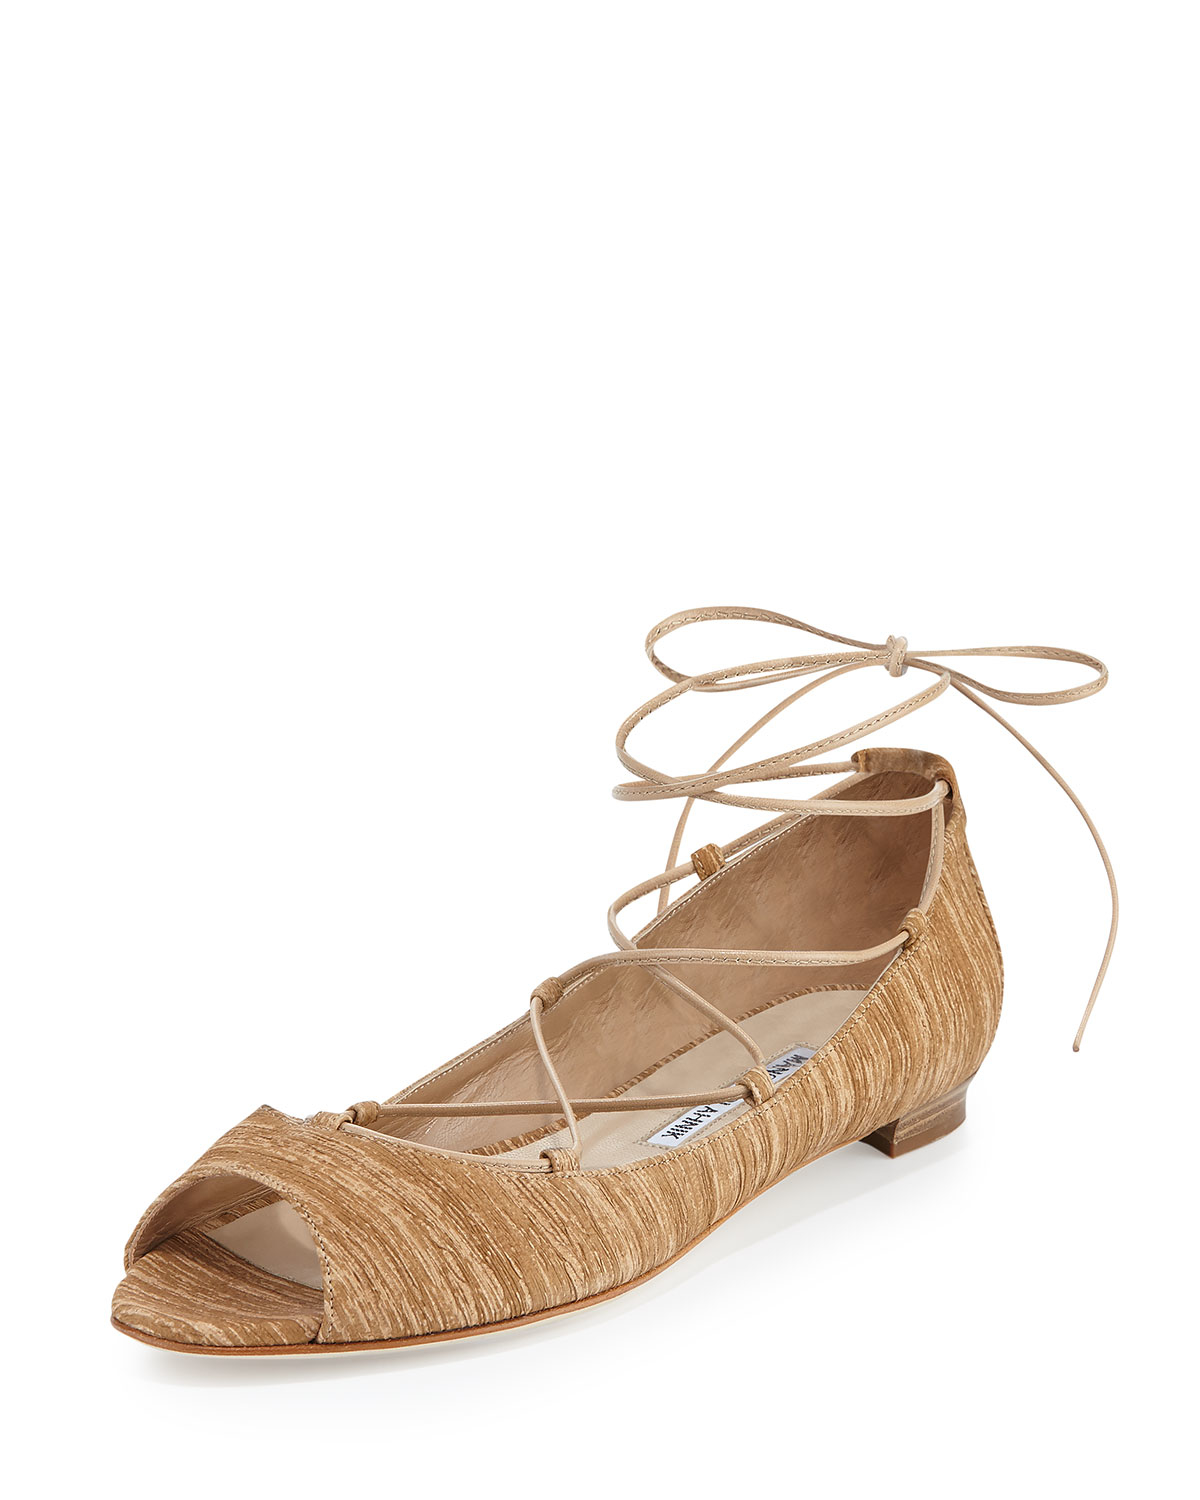 Manolo Blahnik Suede Embroidered Flats store with big discount sale cheap online clearance how much krxD6E